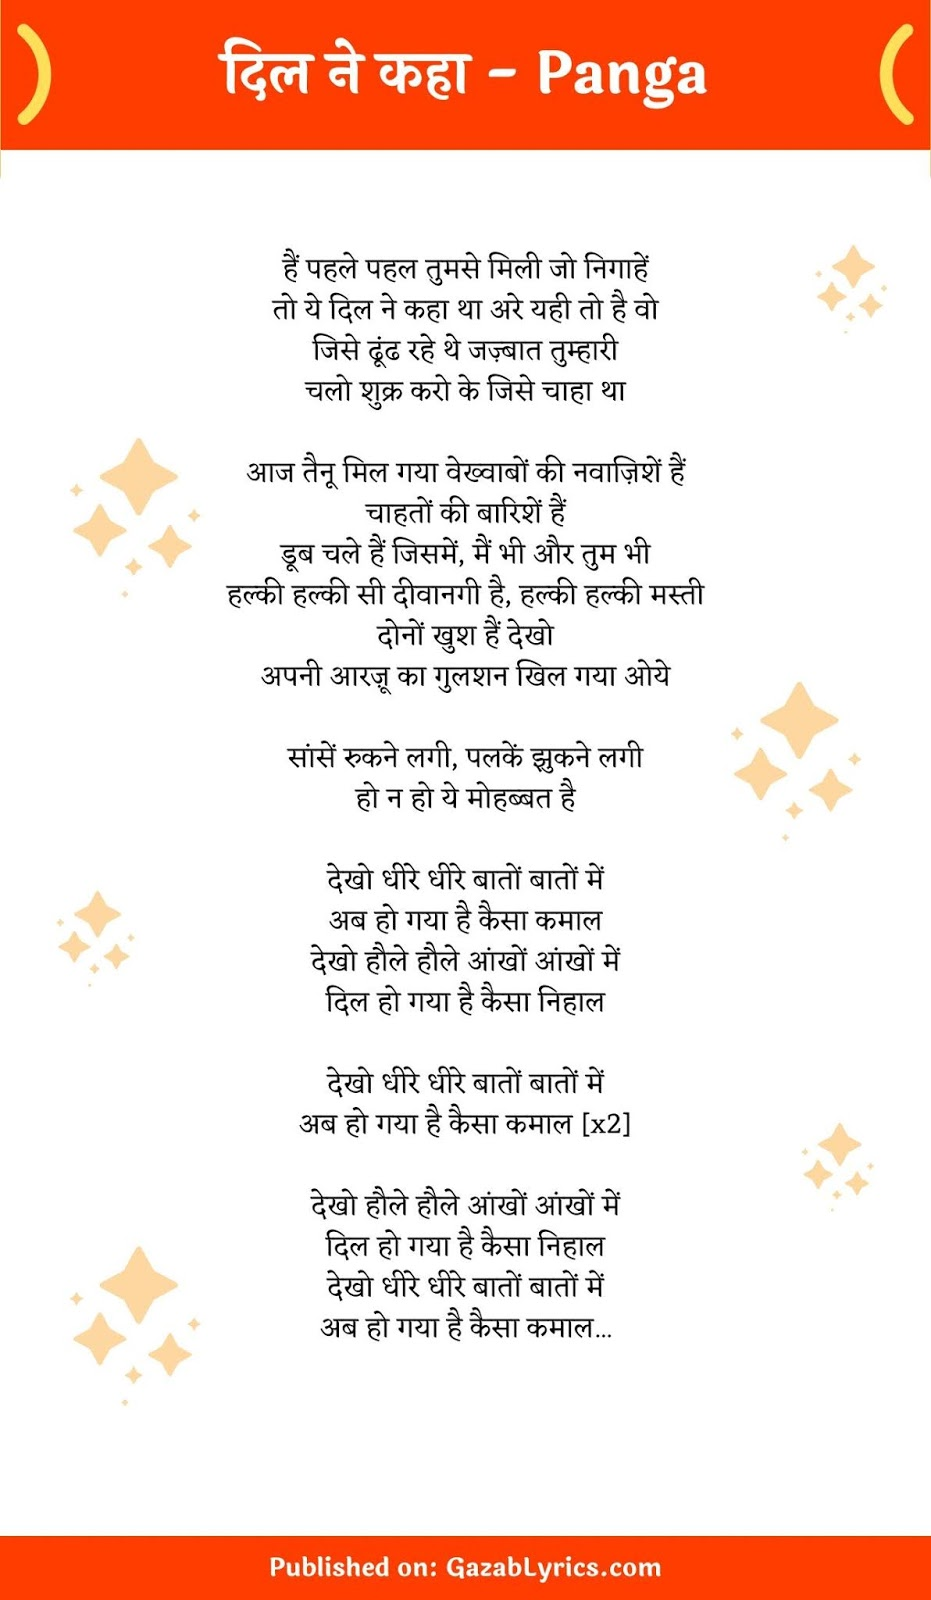 Dil Ne Kaha song lyrics image